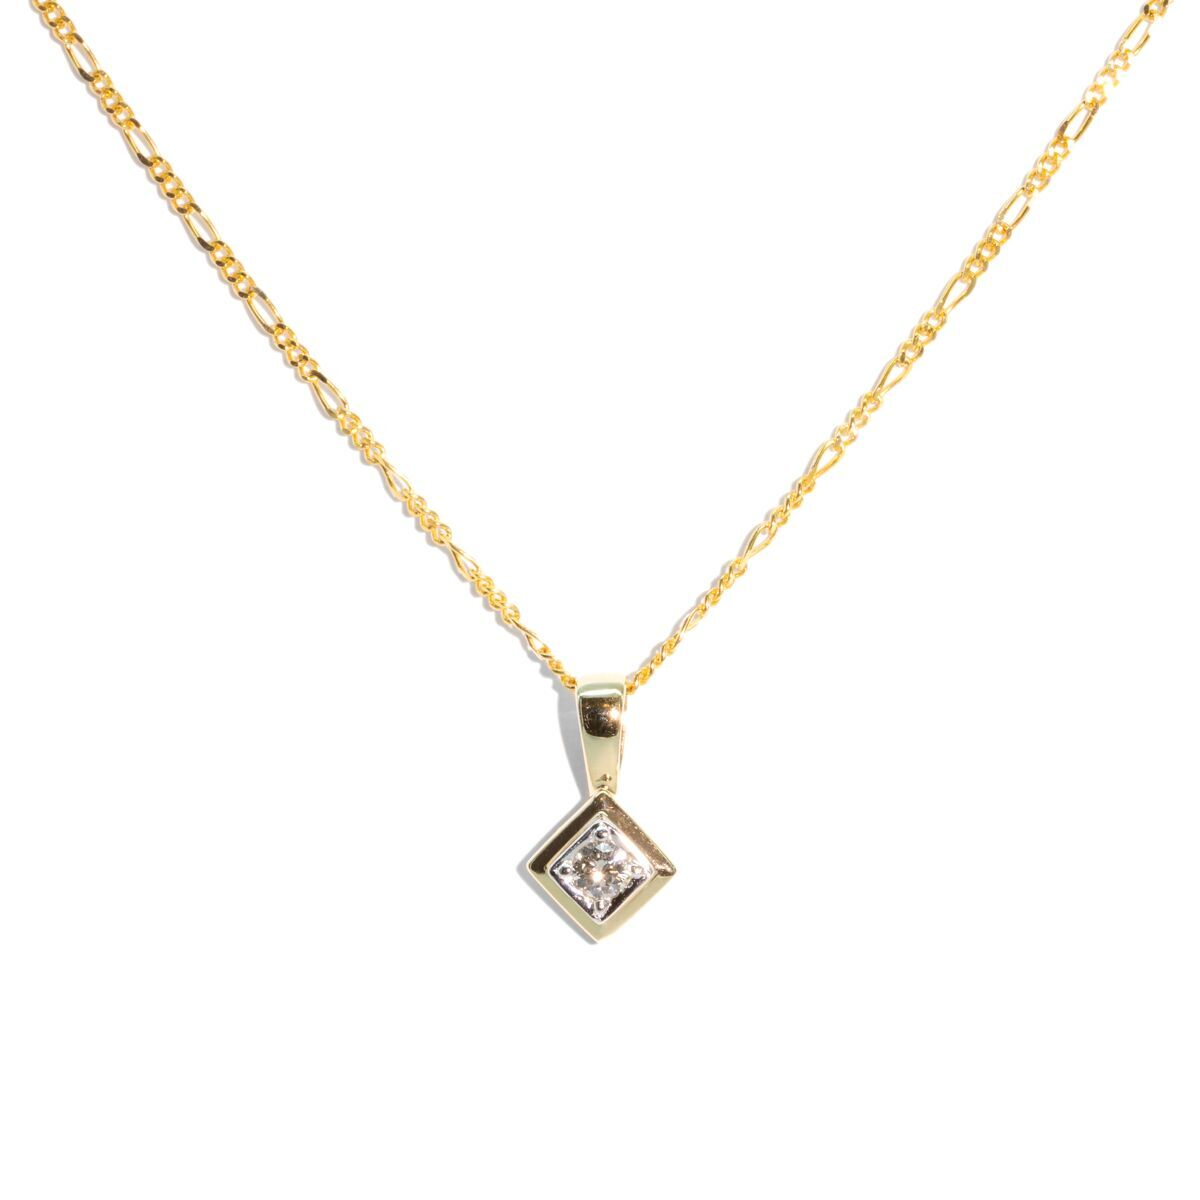 The Naomi Vintage Diamond Necklace